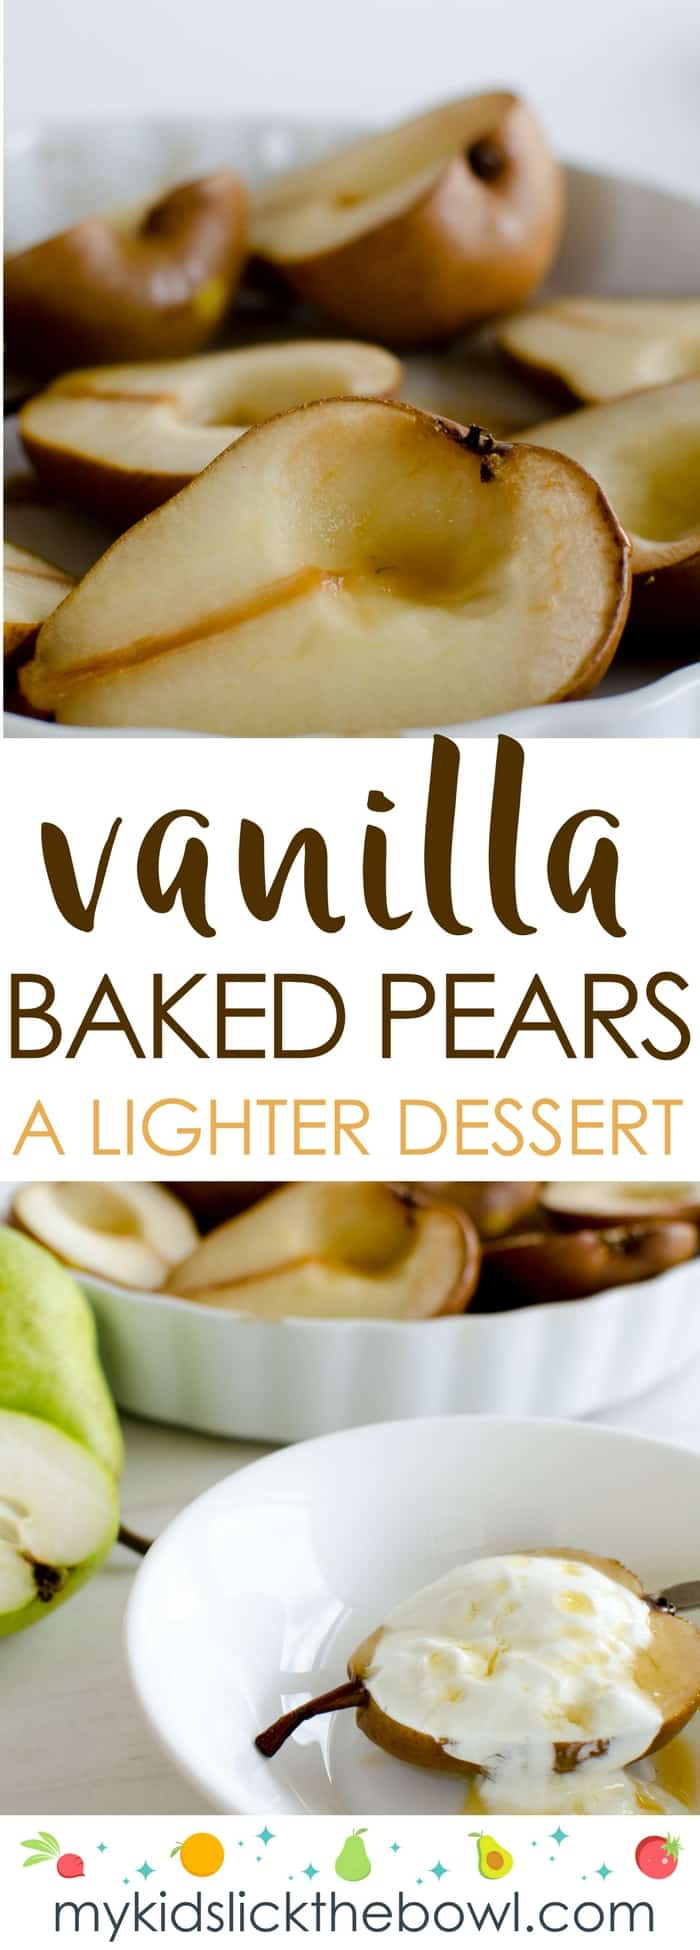 Healthy baked pears, flavoured with vanilla, a lighter fruit based dessert perfect for kids